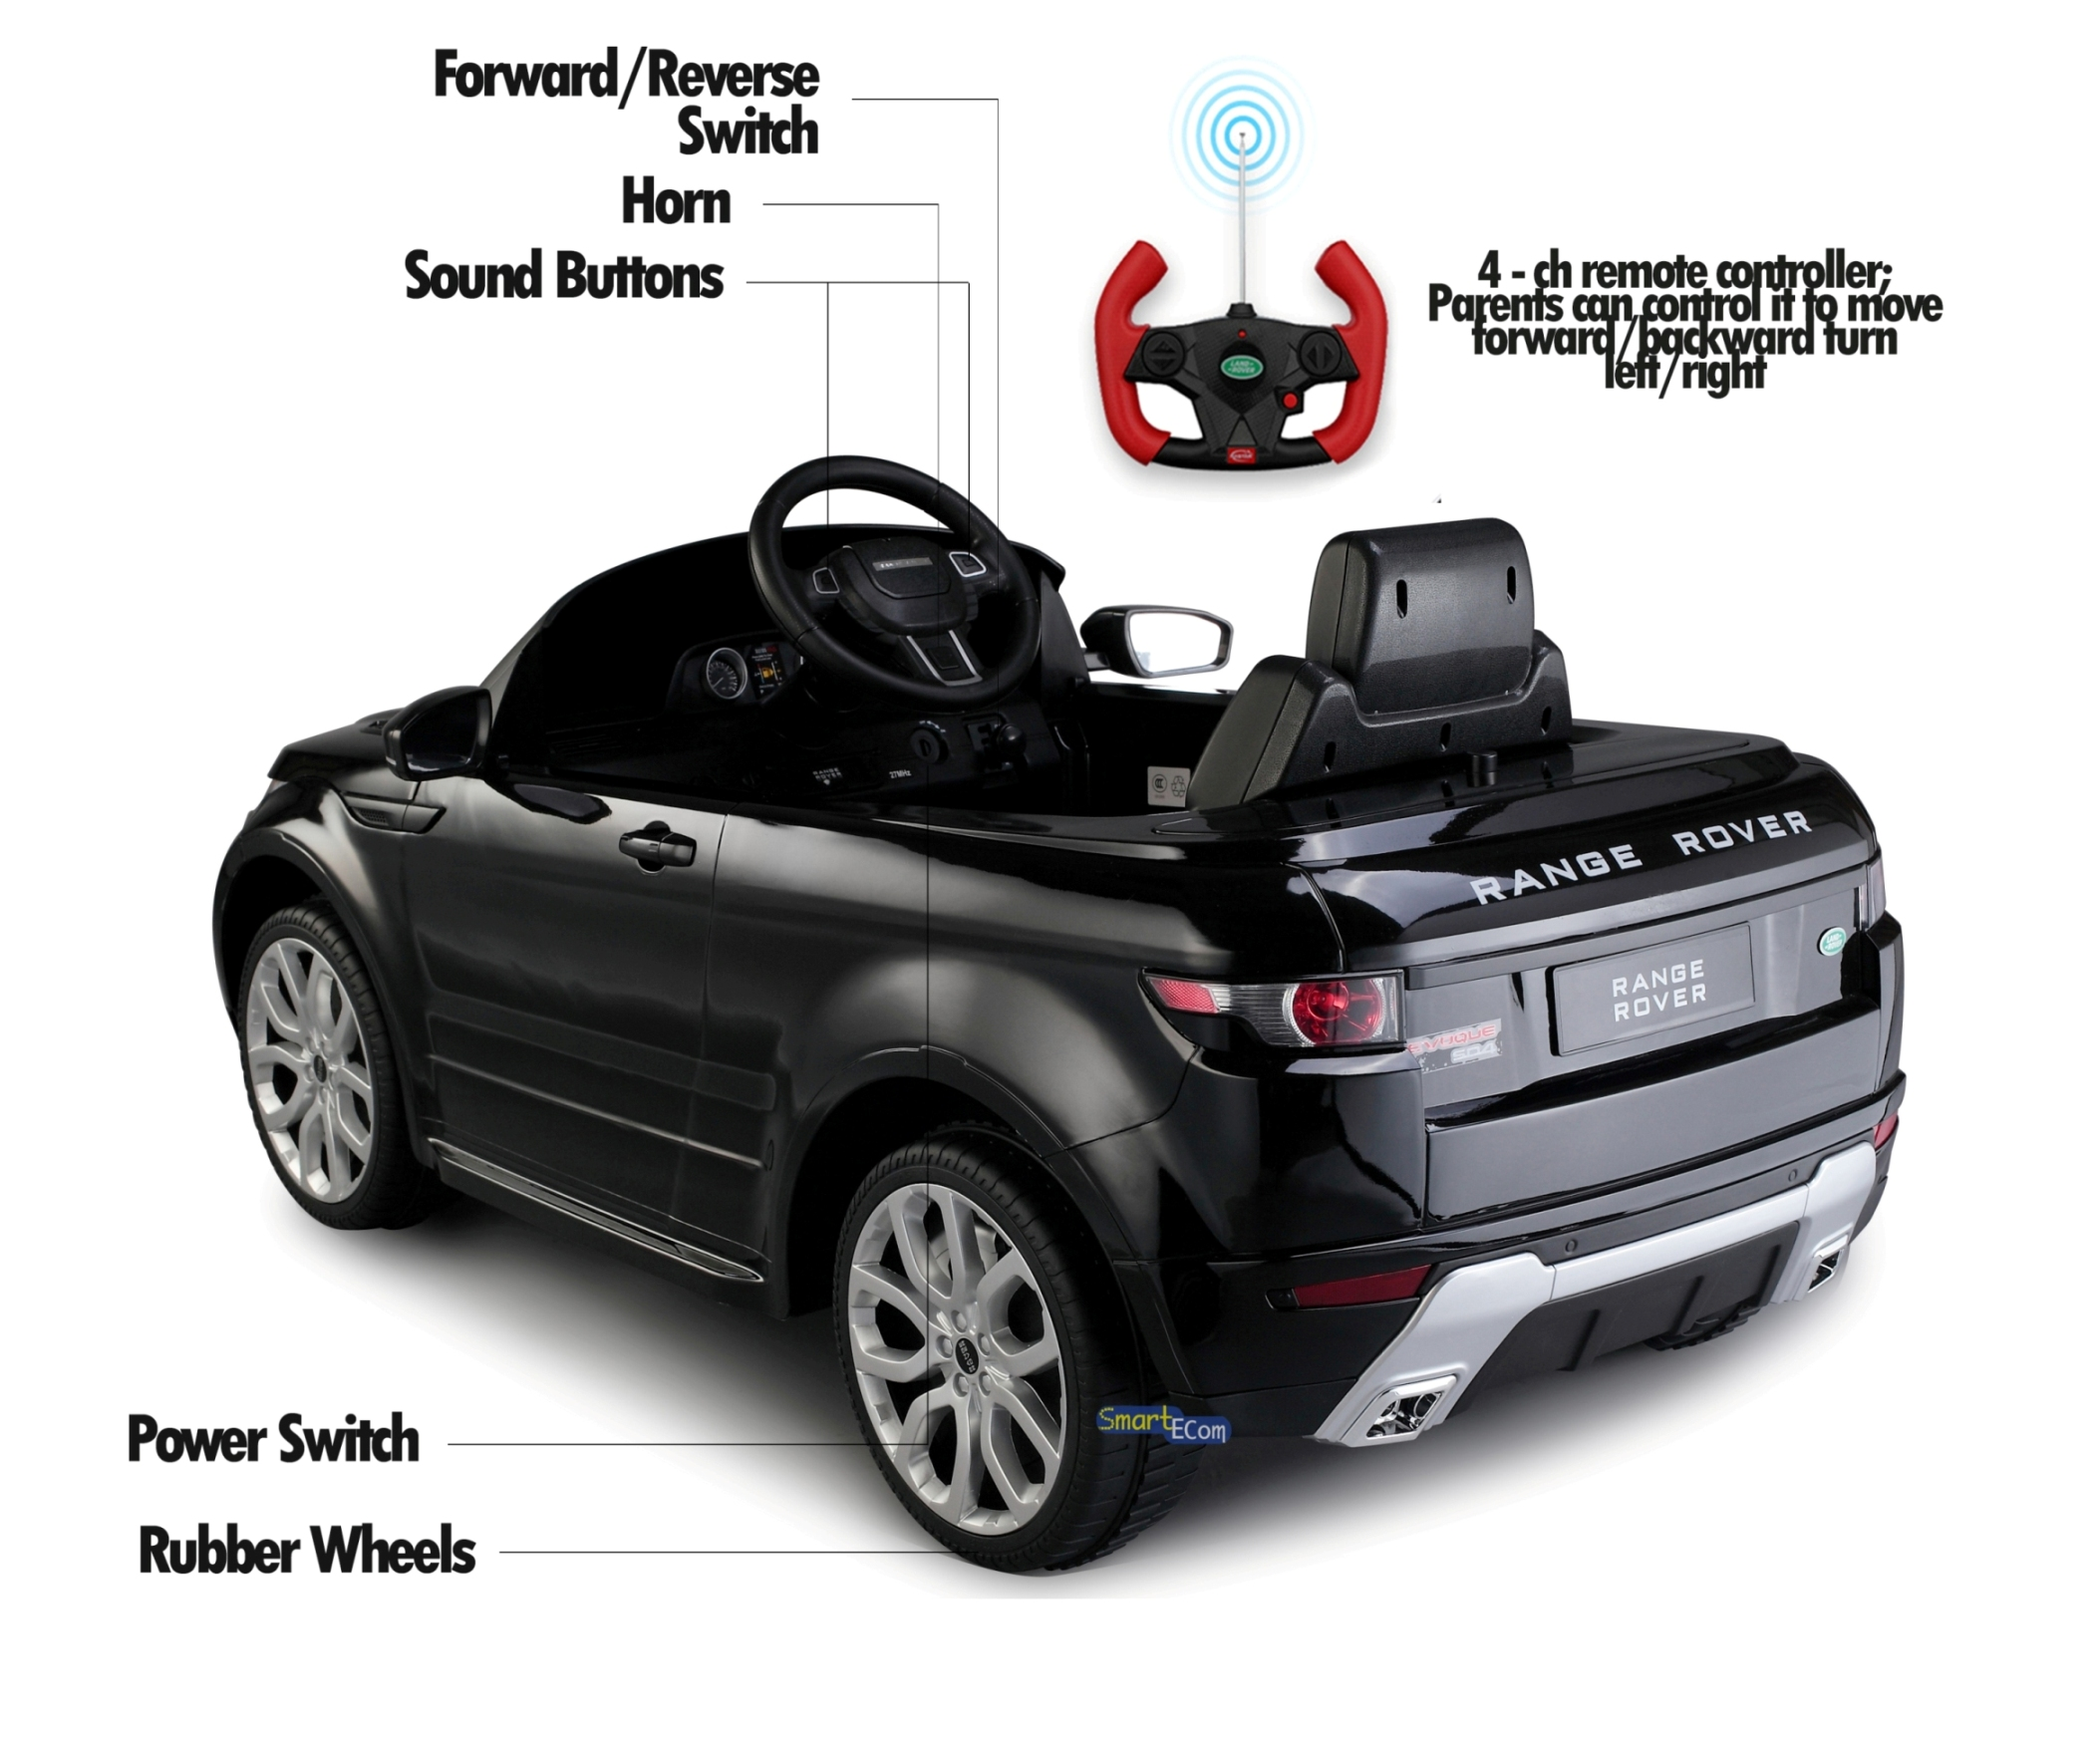 7e79b81d6765 12V Electric power car Range Rover Evoque Ride on toy for kids with Remote  Control LED lights MP3 music and horn - Black - Walmart.com